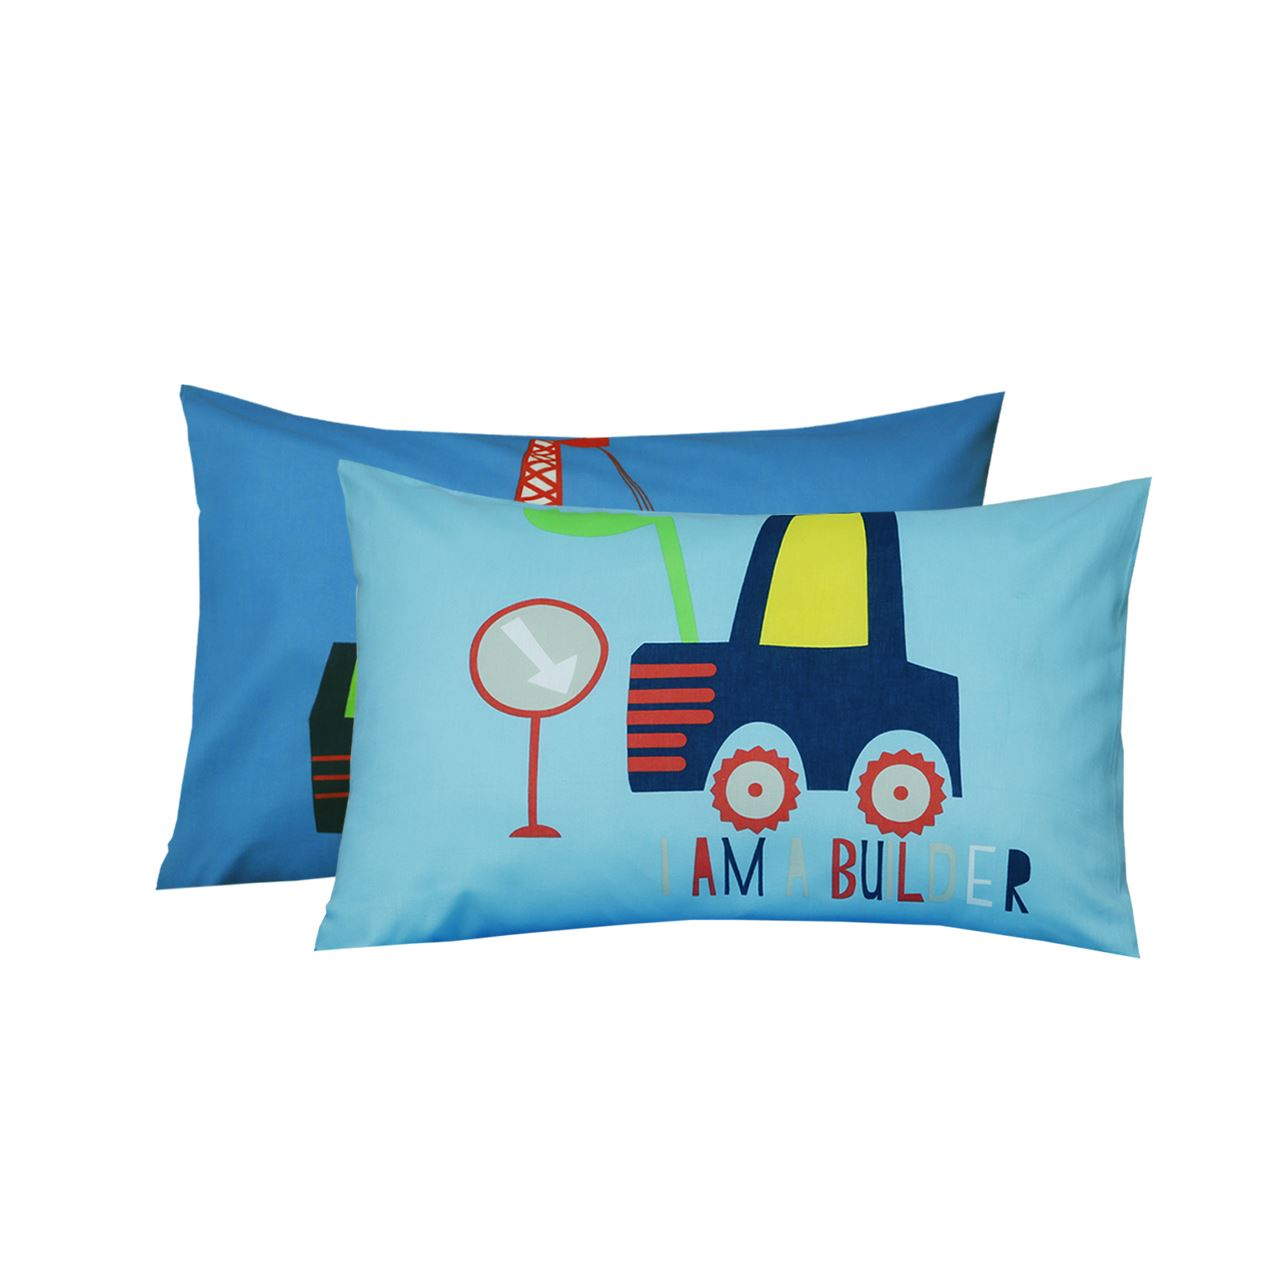 Children-Teenage-Kids-Boys-Girls-Single-Quilt-Duvet-Cover-Pillowcase-Bedding-Set thumbnail 13